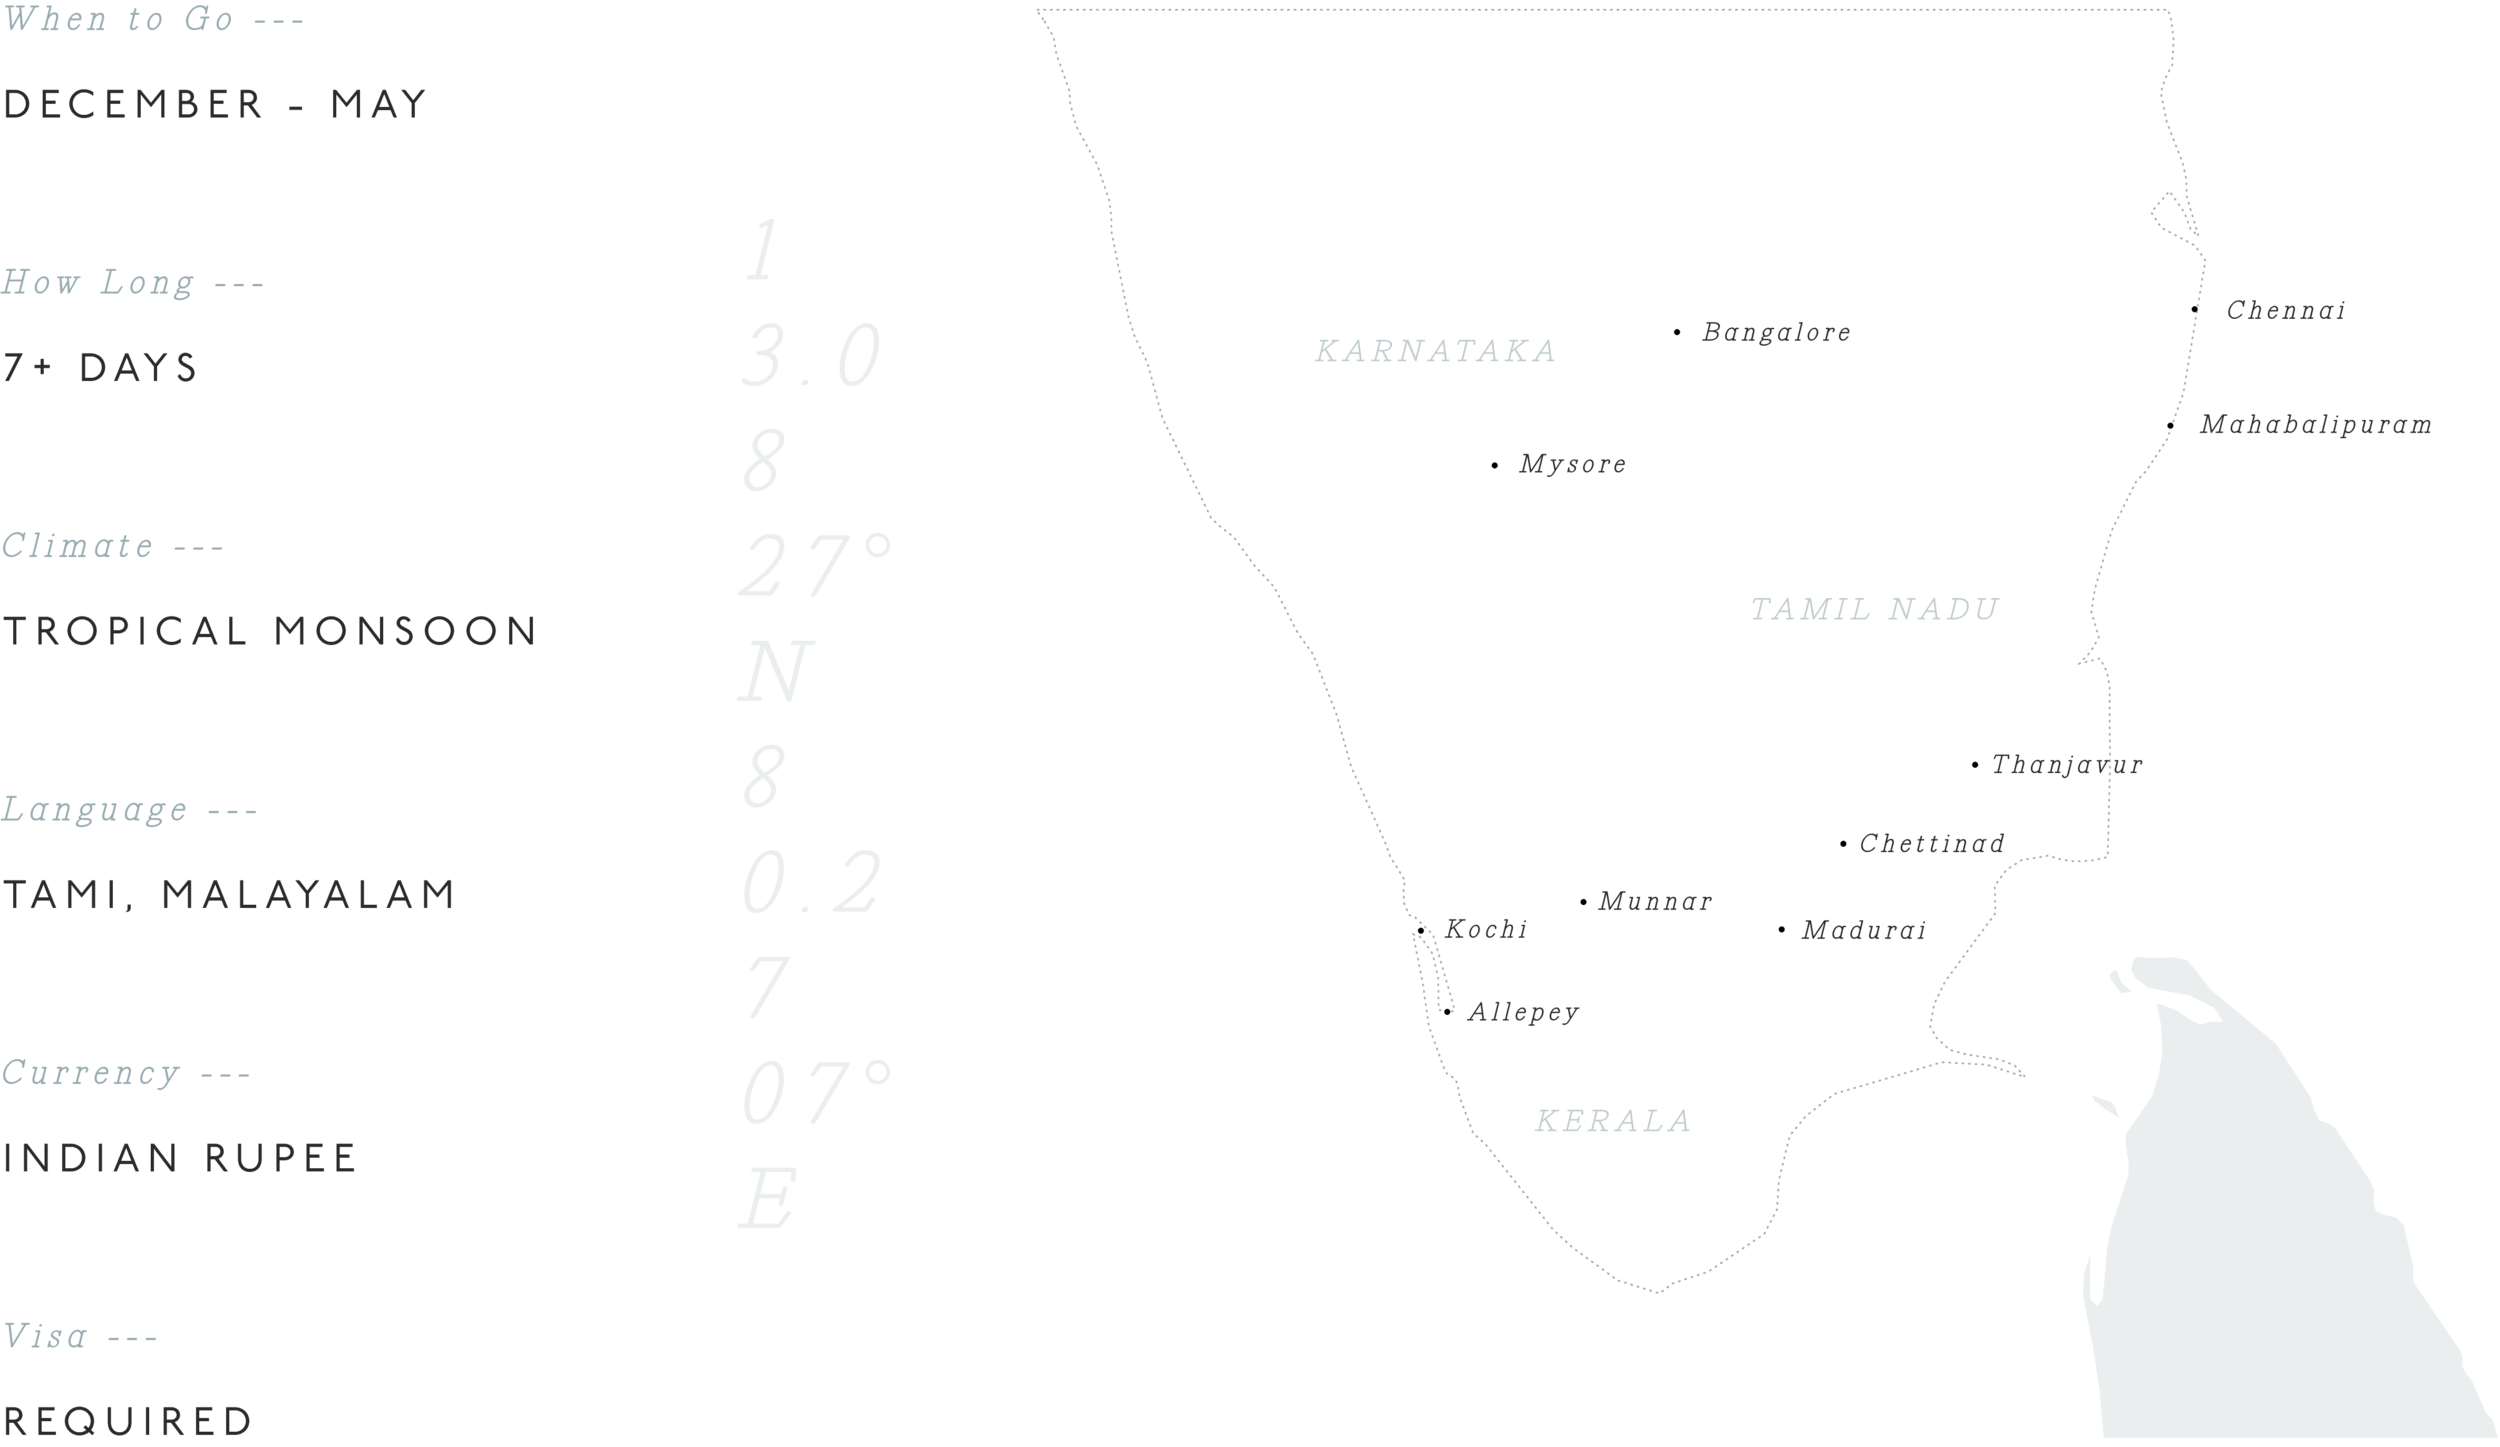 South India 300dpi.png